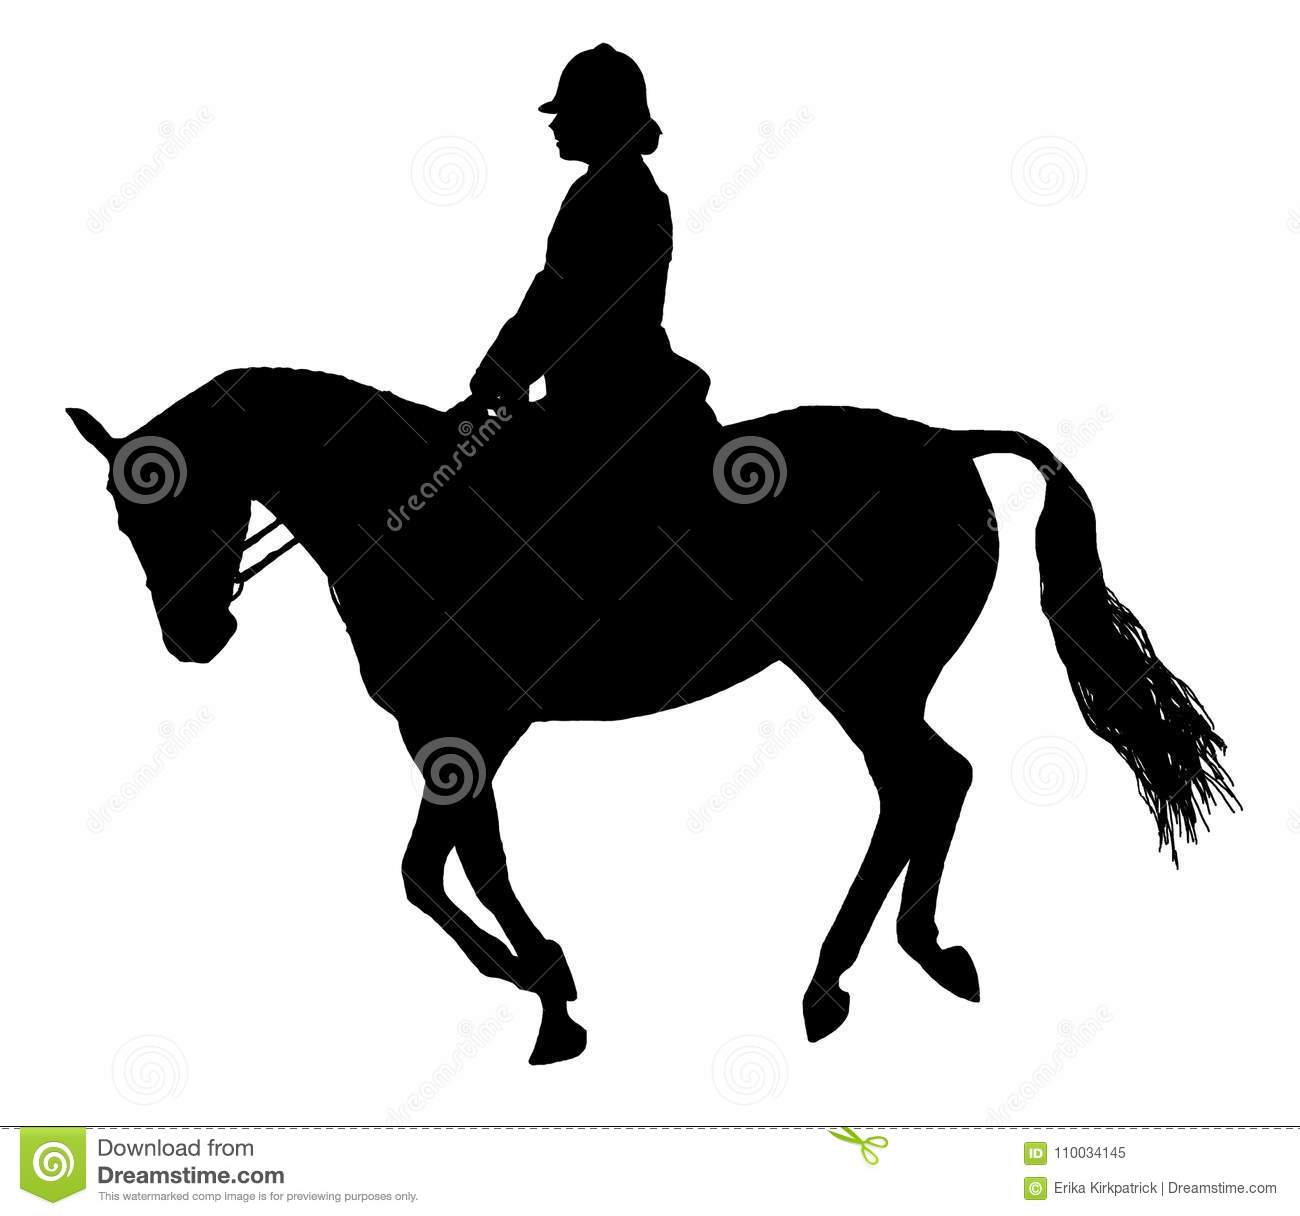 Horse Rider Silhouette Stock Illustrations 3 814 Horse Rider Silhouette Stock Illustrations Vectors Clipart Dreamstime